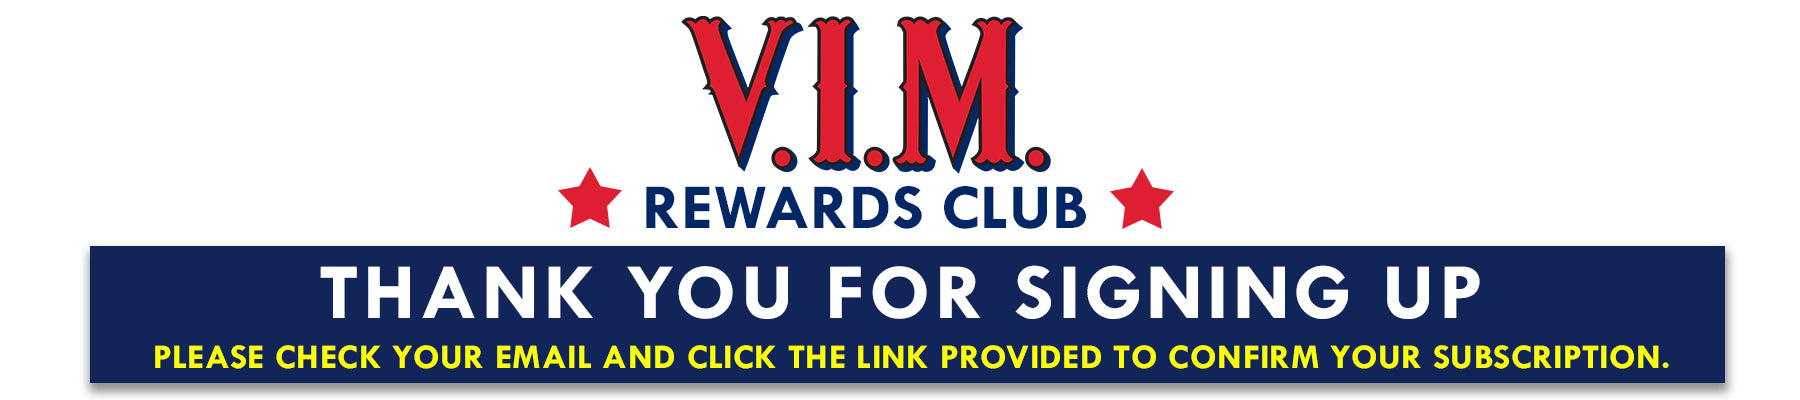 Thank you for signing up to VIM rewards club